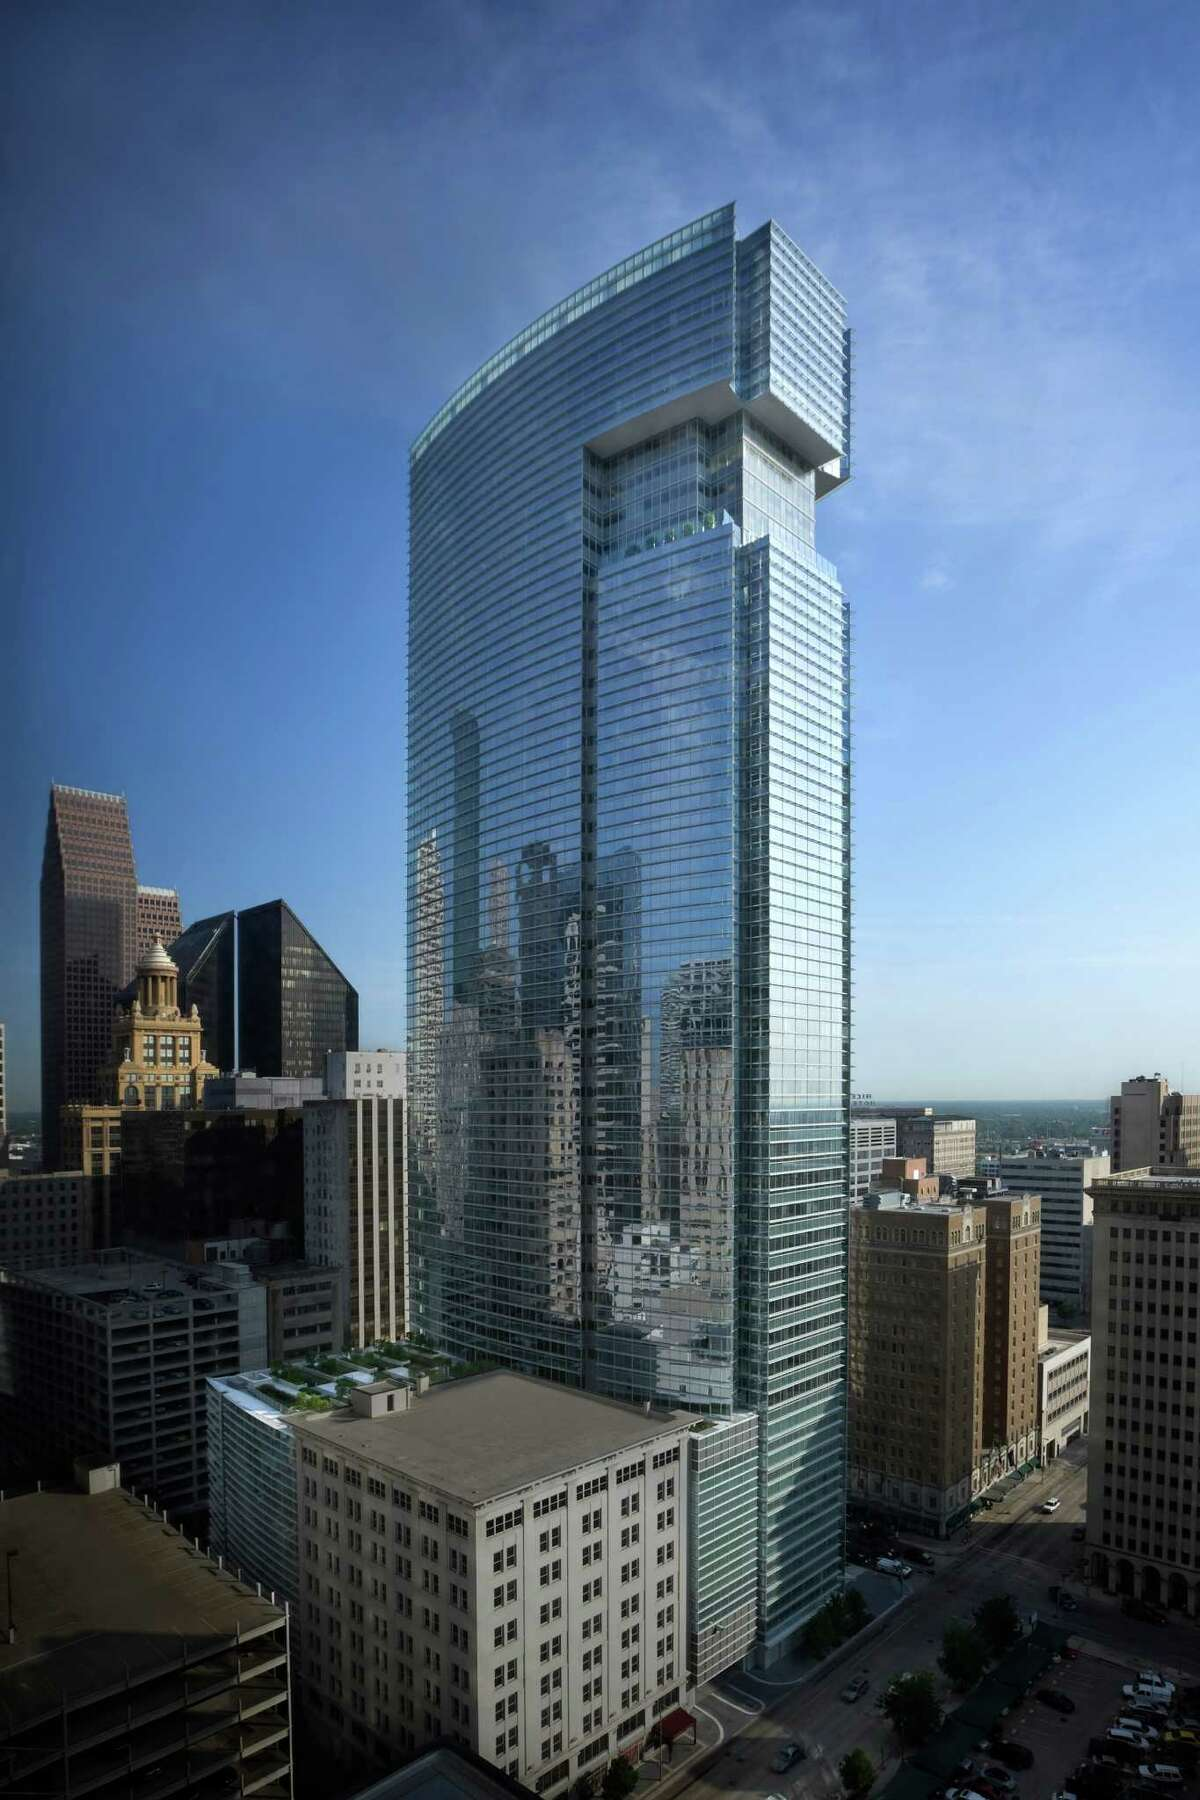 BG Group Place in downtown Houston won a BOMA International TOBY Award in the 500,000 to One Million Square Feet category.